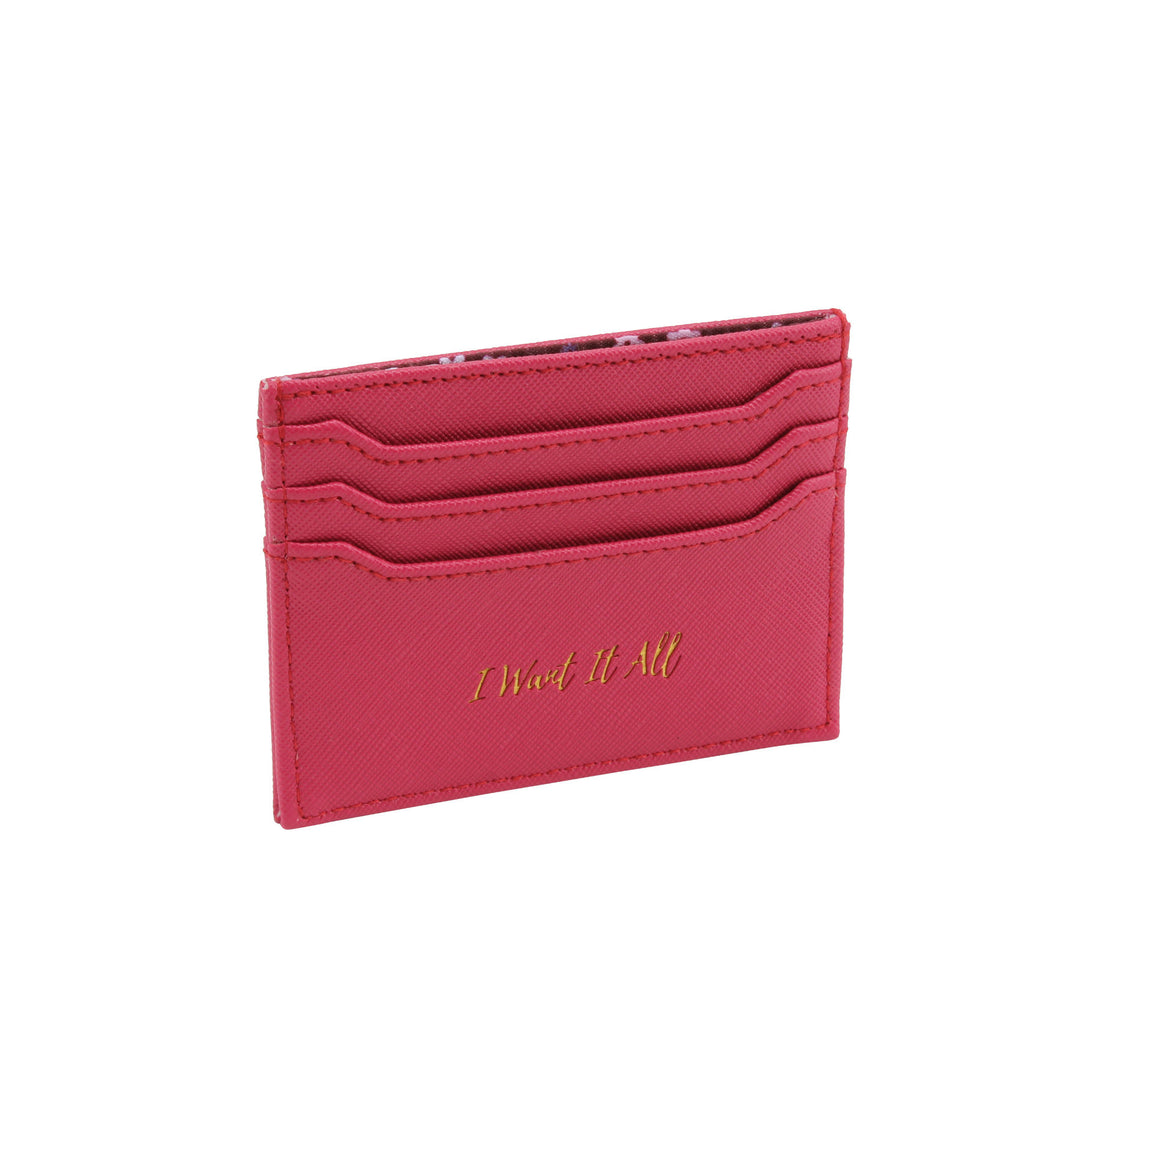 Willow & Rose 'I Want It All' Berry Card Holder - The Love Trees